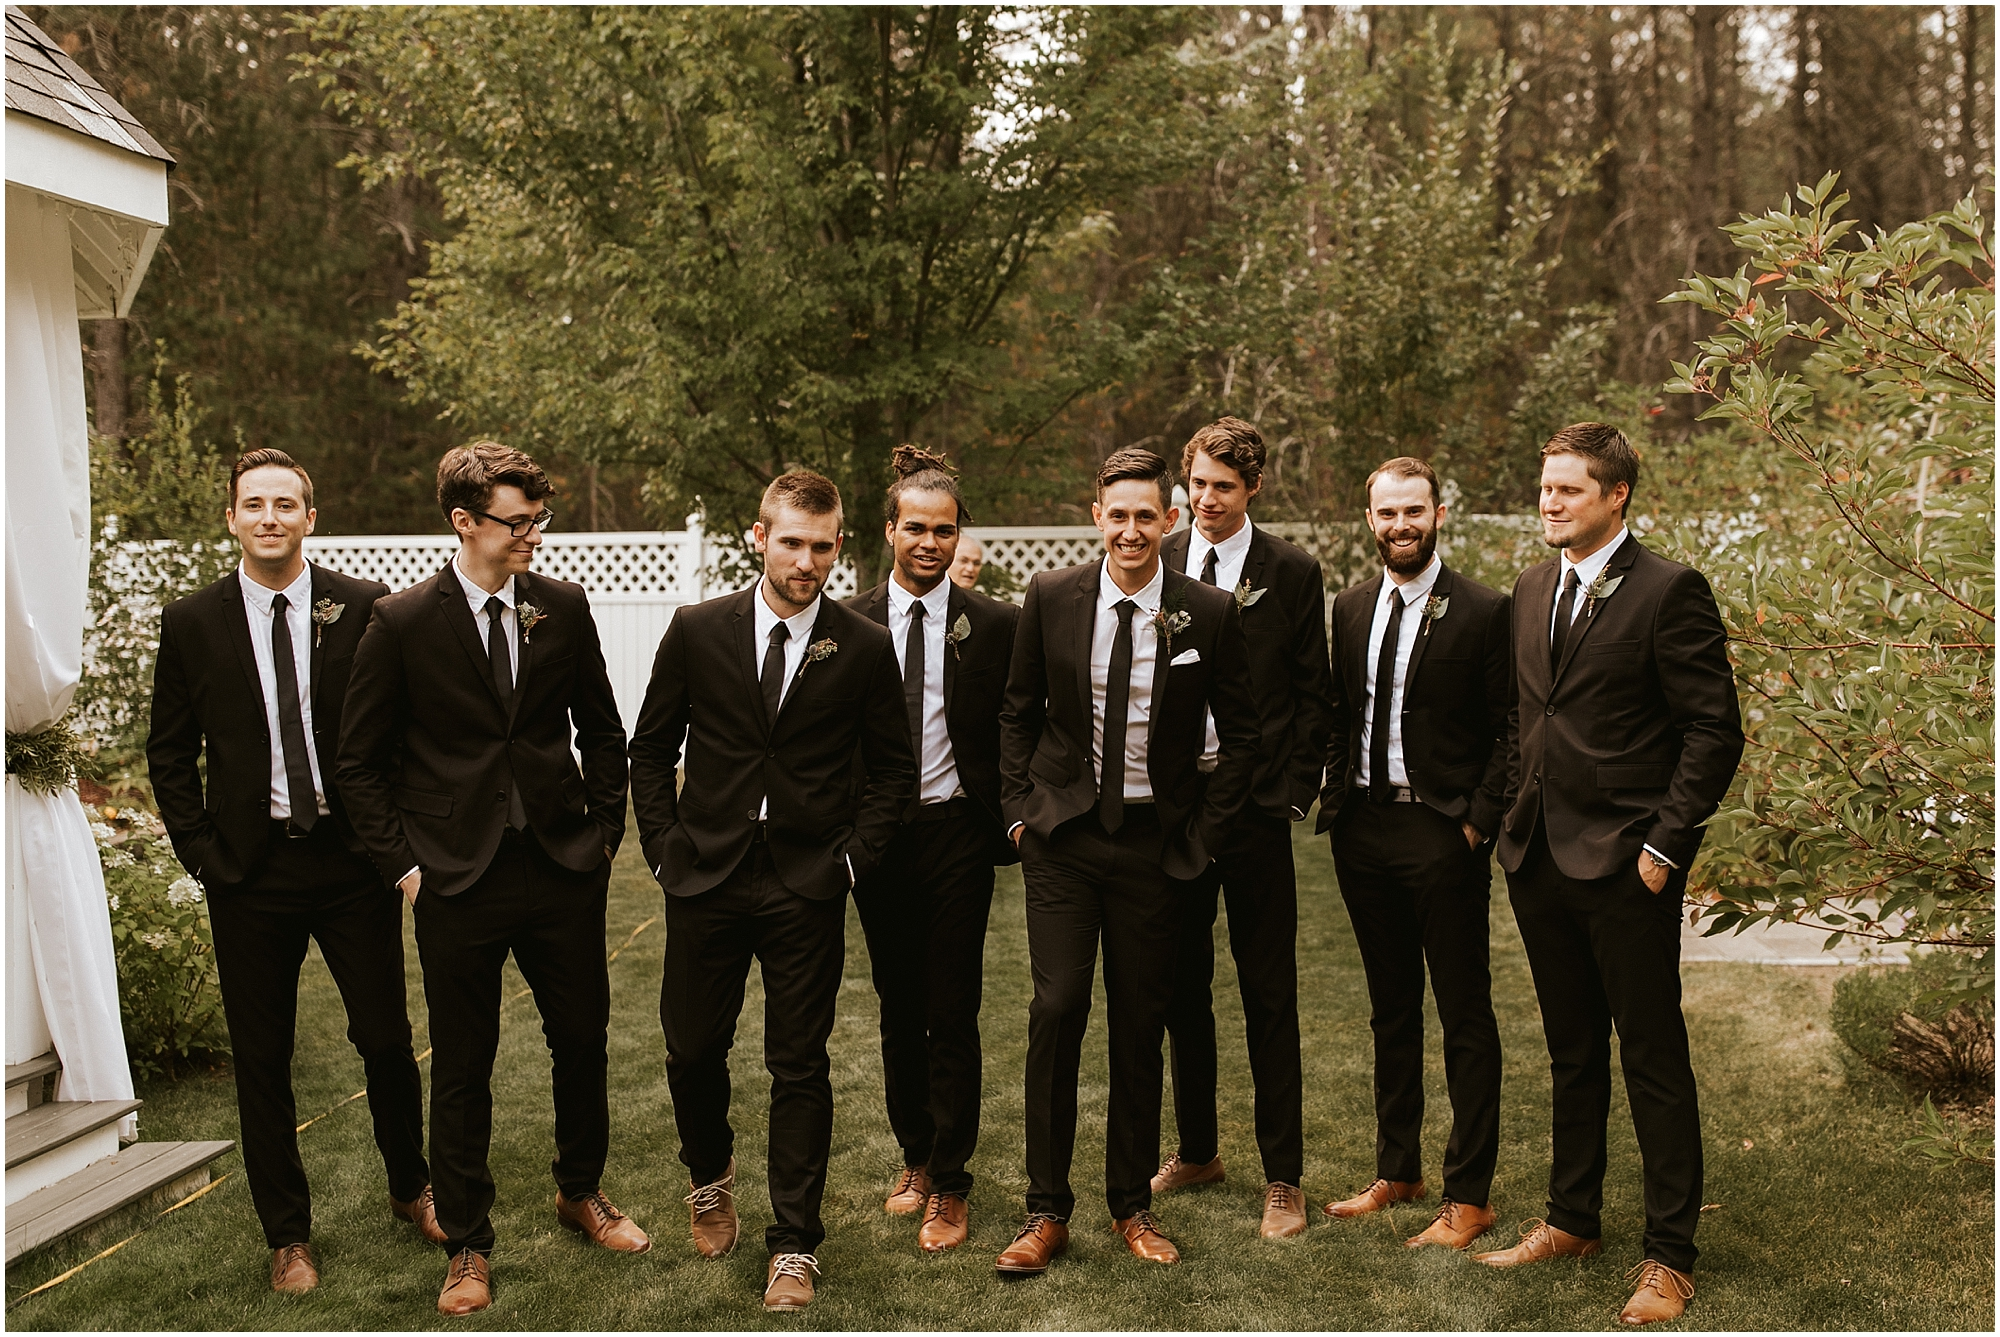 Foxwood House Spokane Wedding Cassie Trottier Photography1025.jpg